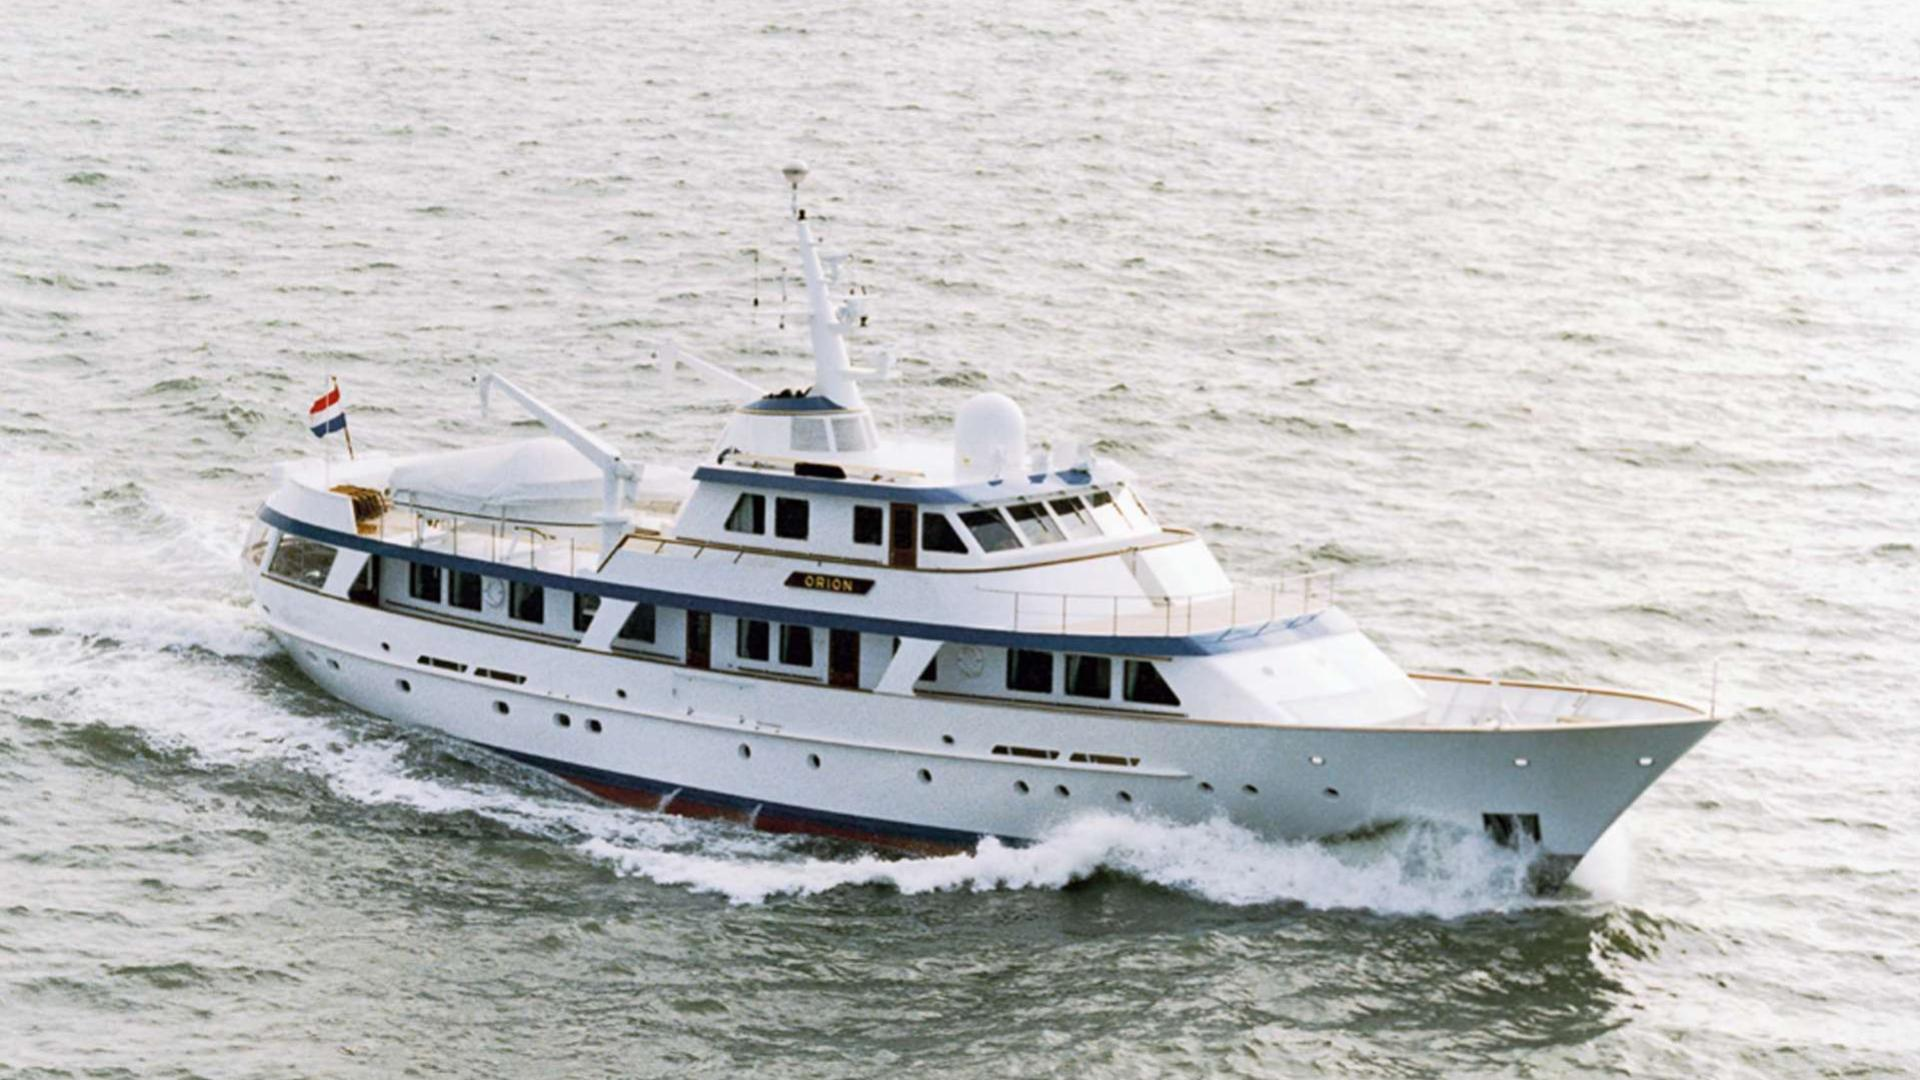 orion-motor-yacht-feadship-1984-38m-cruising